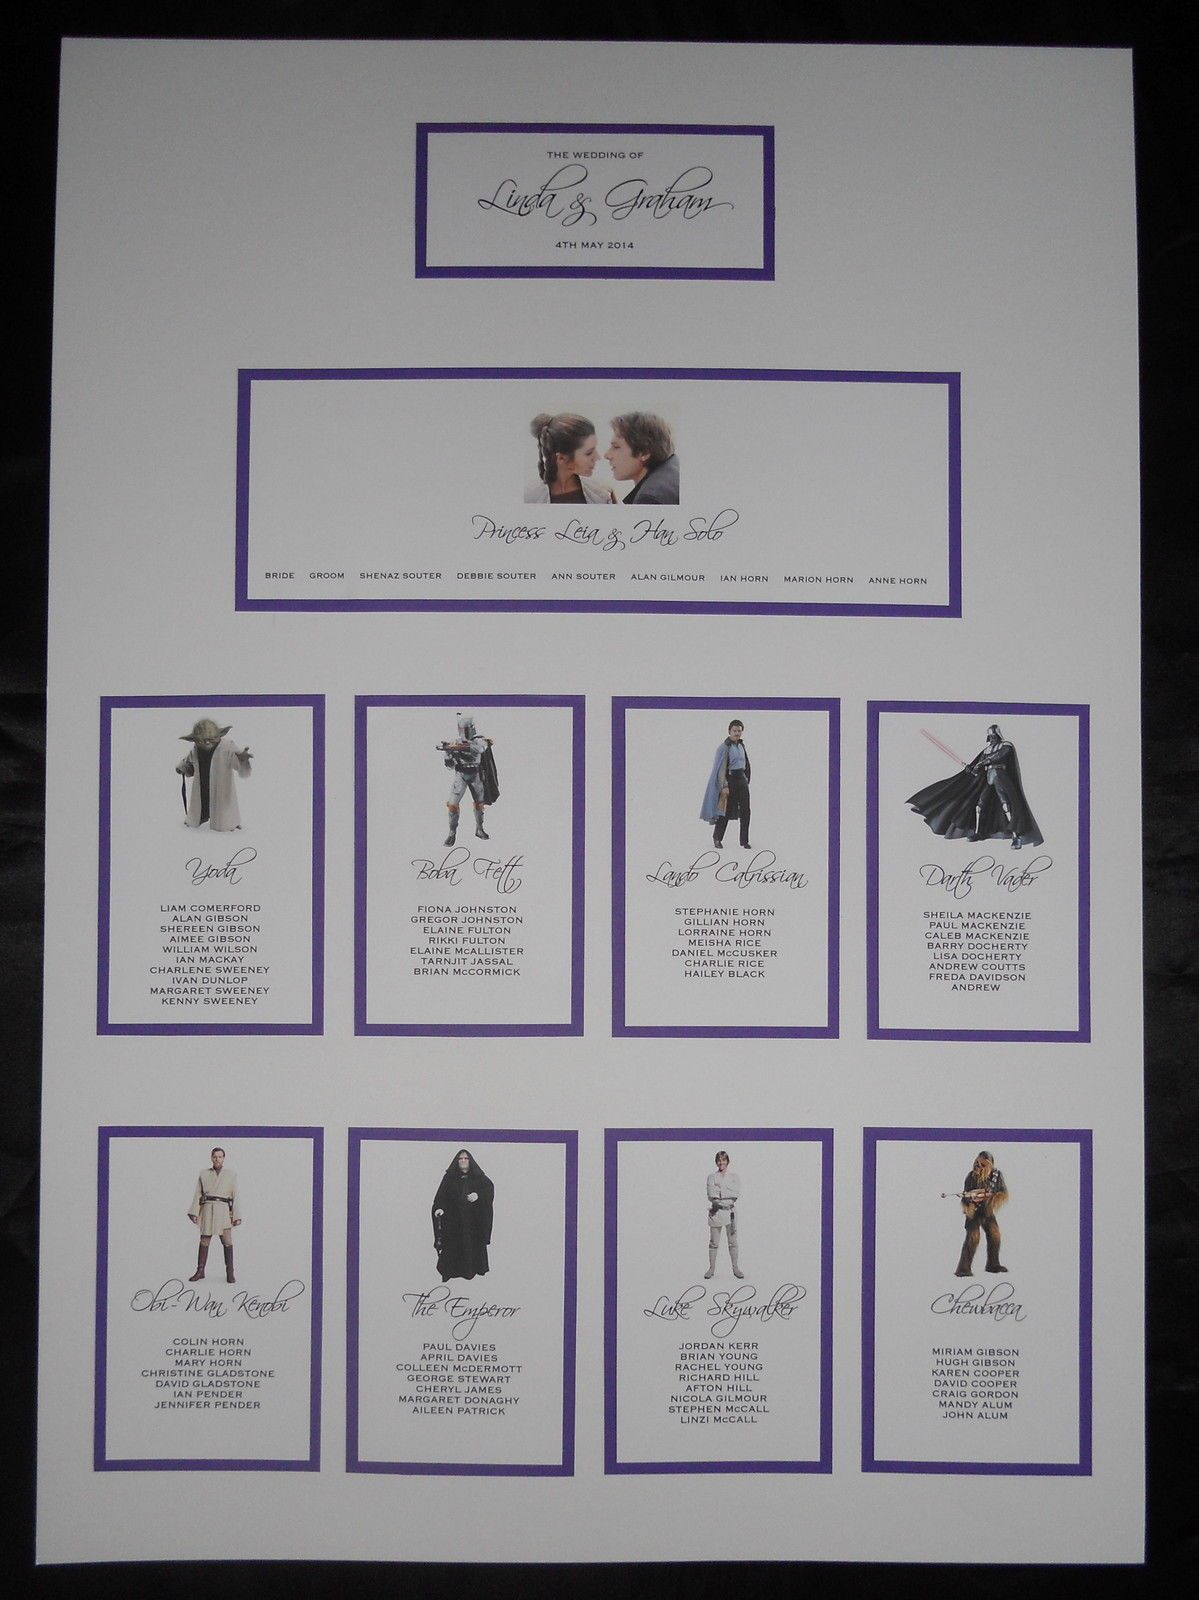 Star wars or any theme wedding table seating plan choice of colours star wars or any theme wedding table seating plan choice of colours designs ebay junglespirit Image collections